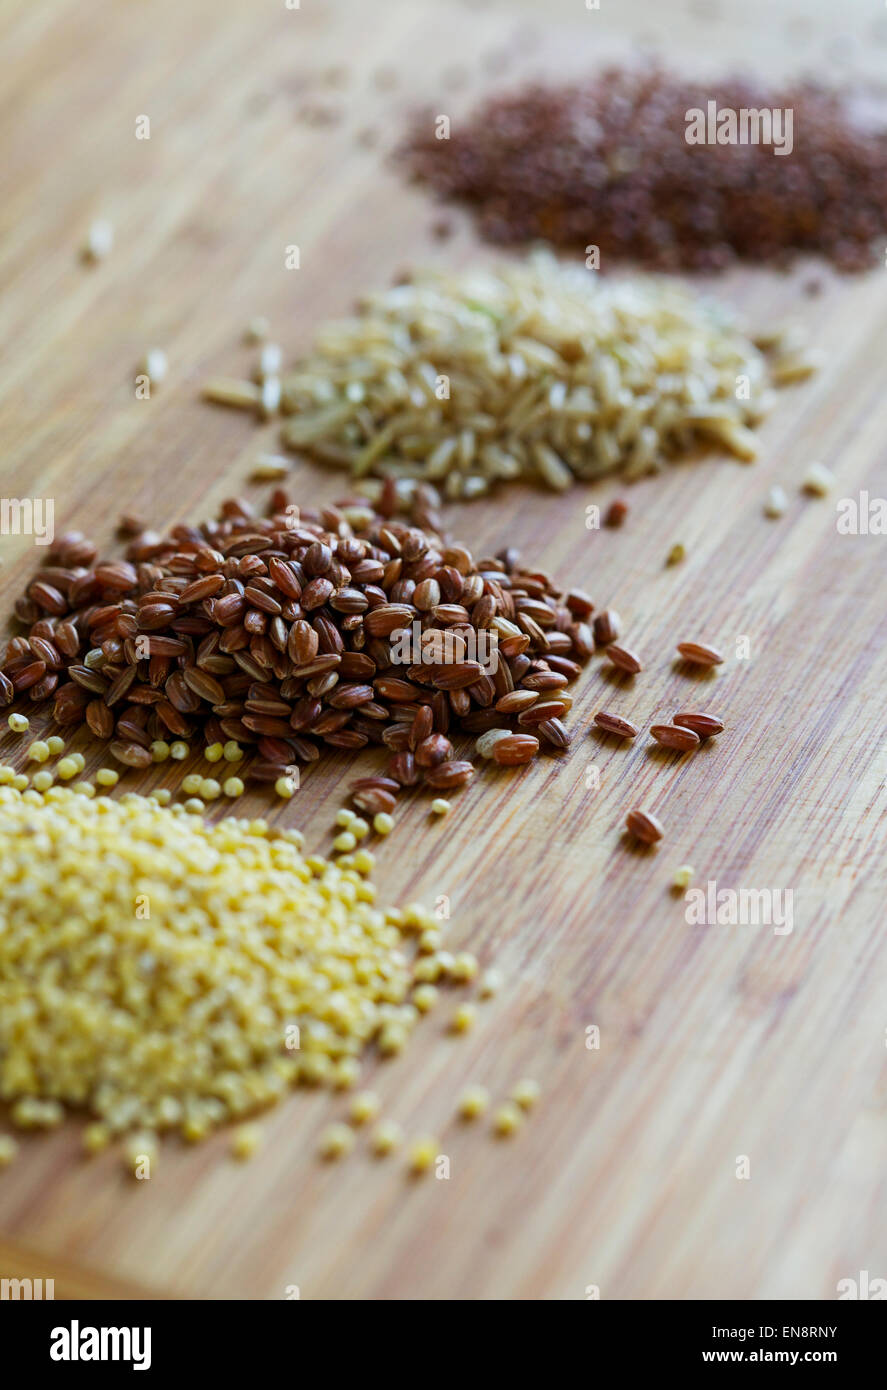 Four piles of uncooked whole grains including millet, red rice, brown rice and red quinoa. - Stock Image